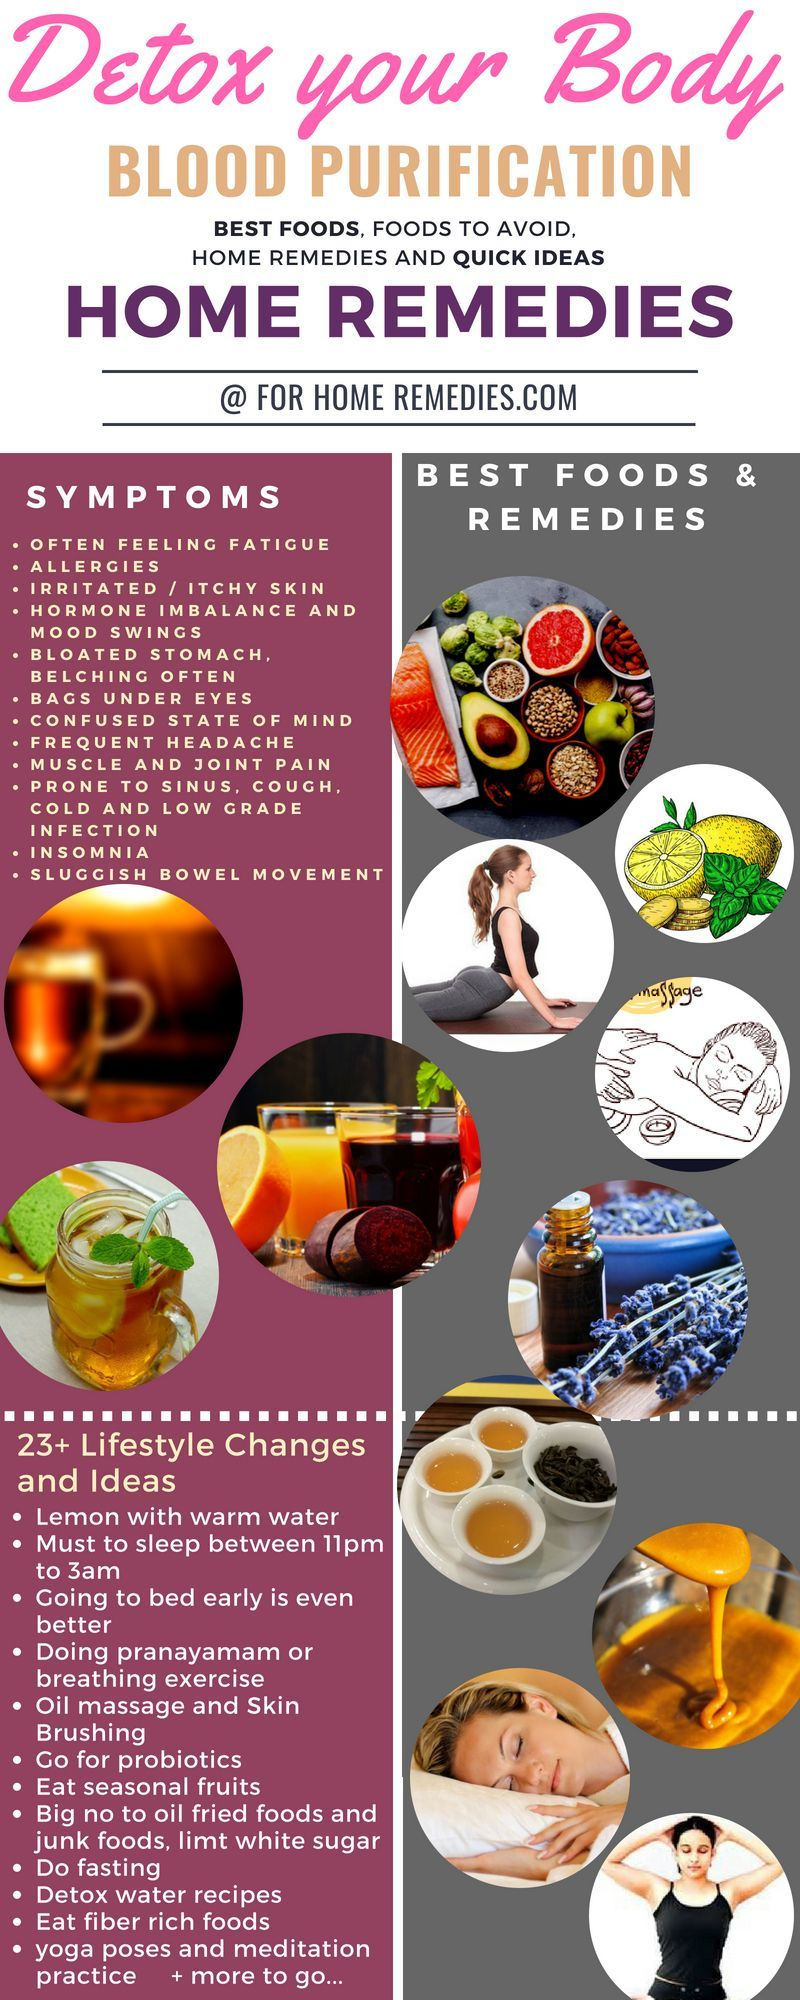 23 Quick Ideas, Best Foods & Home Remedies for Blood